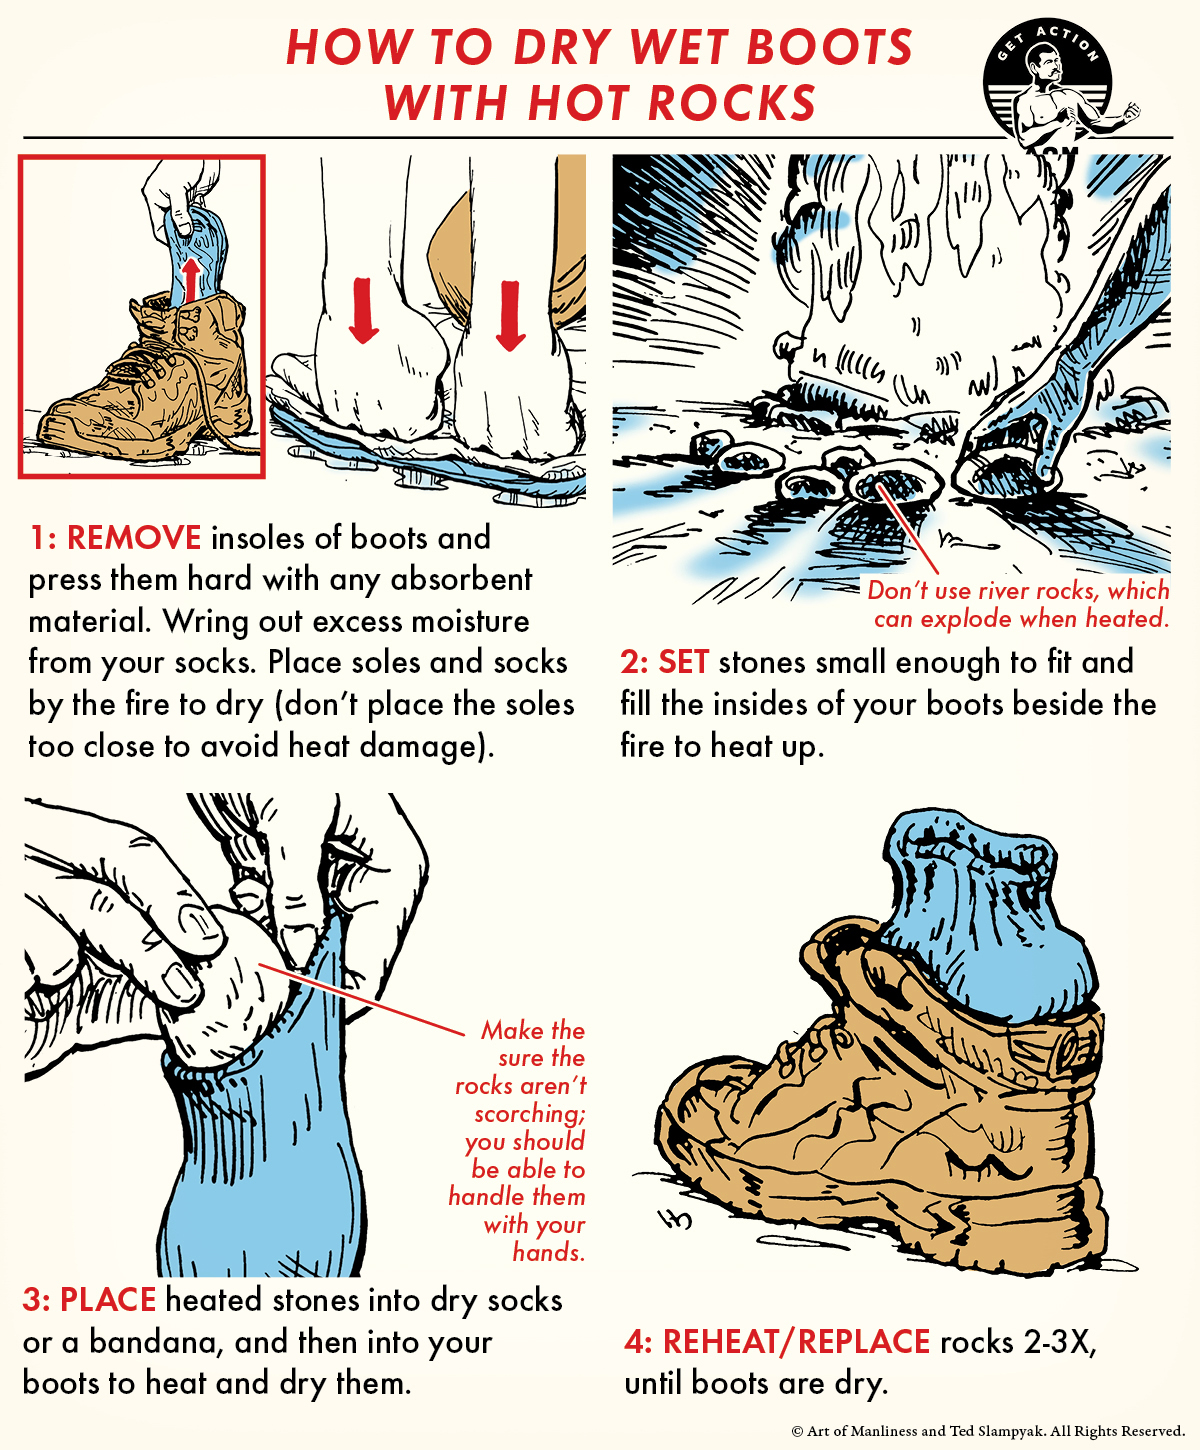 How to Dry Wet Boots With Hot Rocks comic guide.